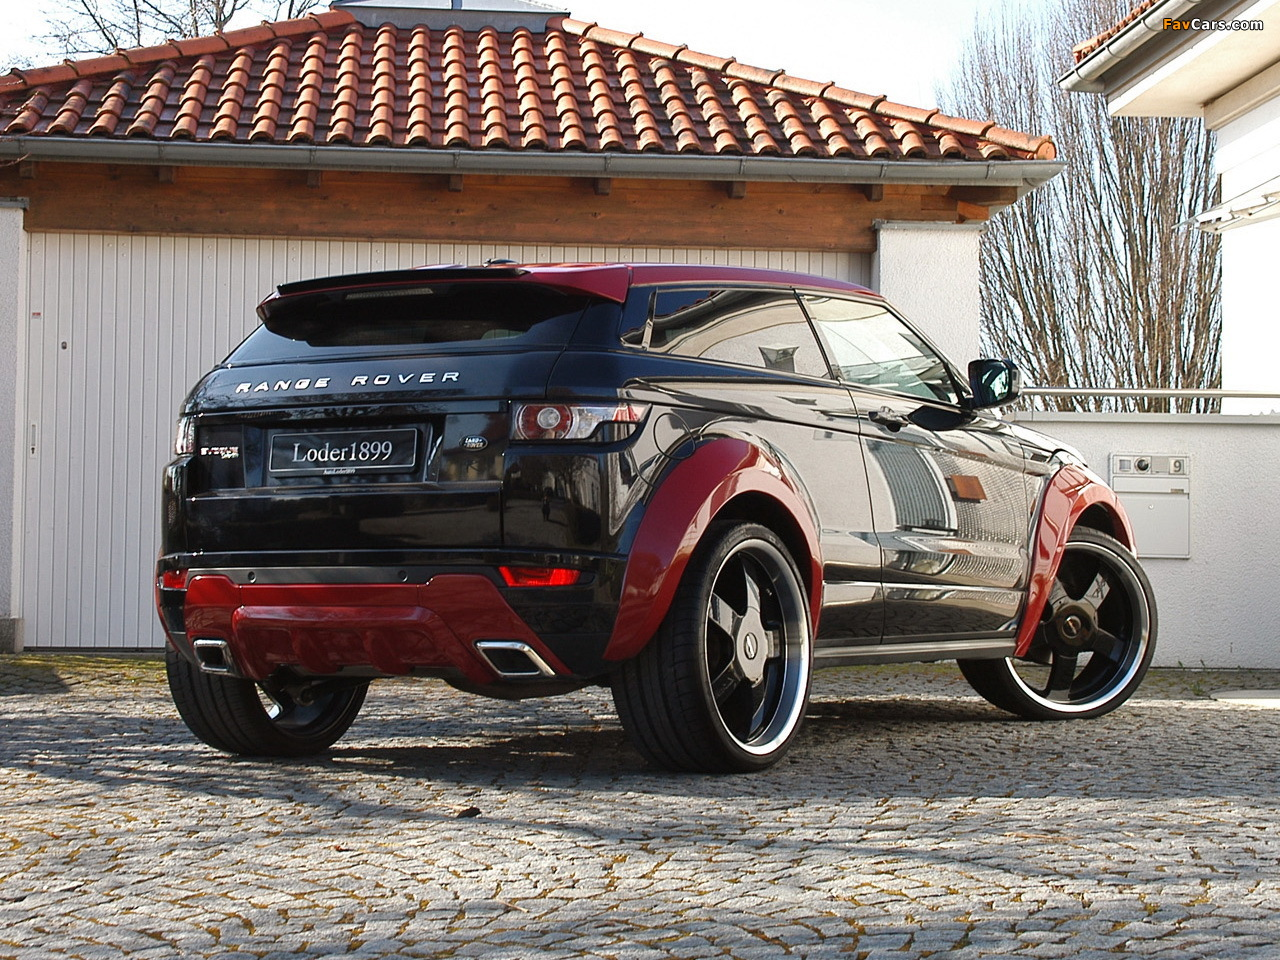 Pictures of Loder1899 Range Rover Evoque 2012 (1280 x 960)